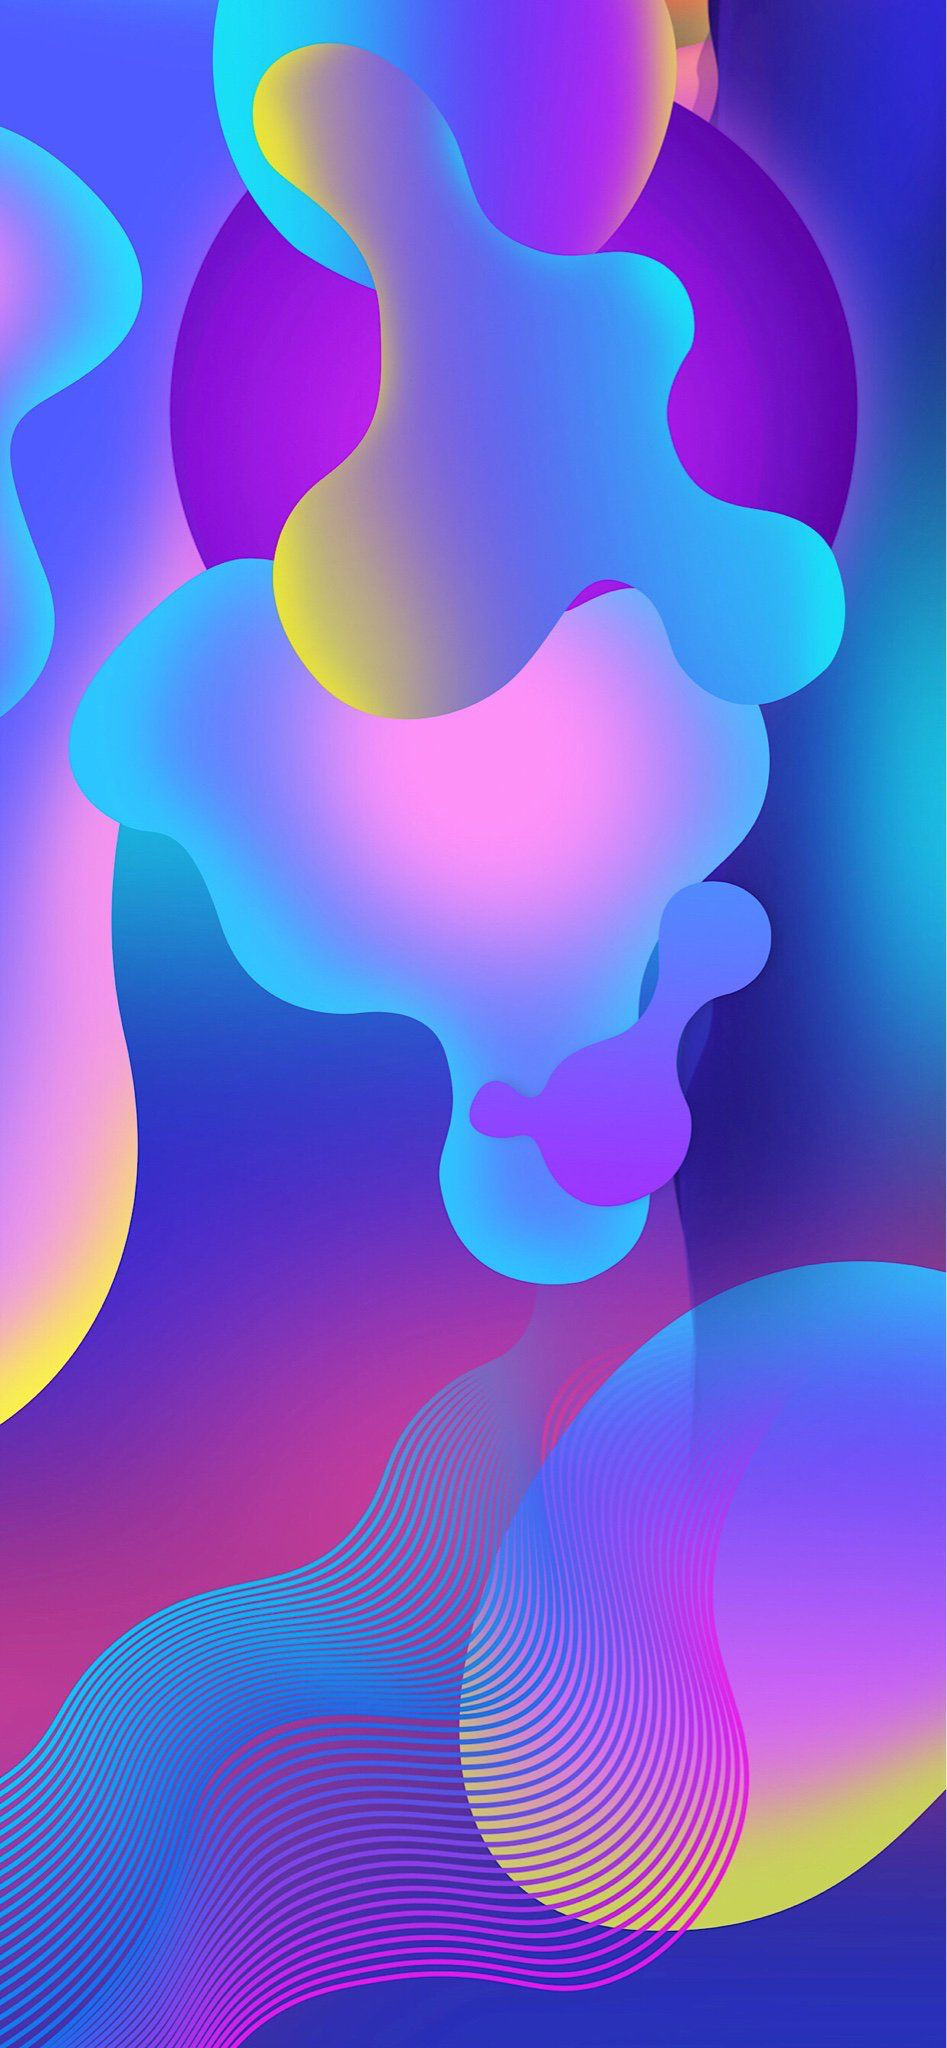 Iphone Xs Max Wallpaper Iphone Wallpaper Smartphone Wallpaper Pretty Wallpapers